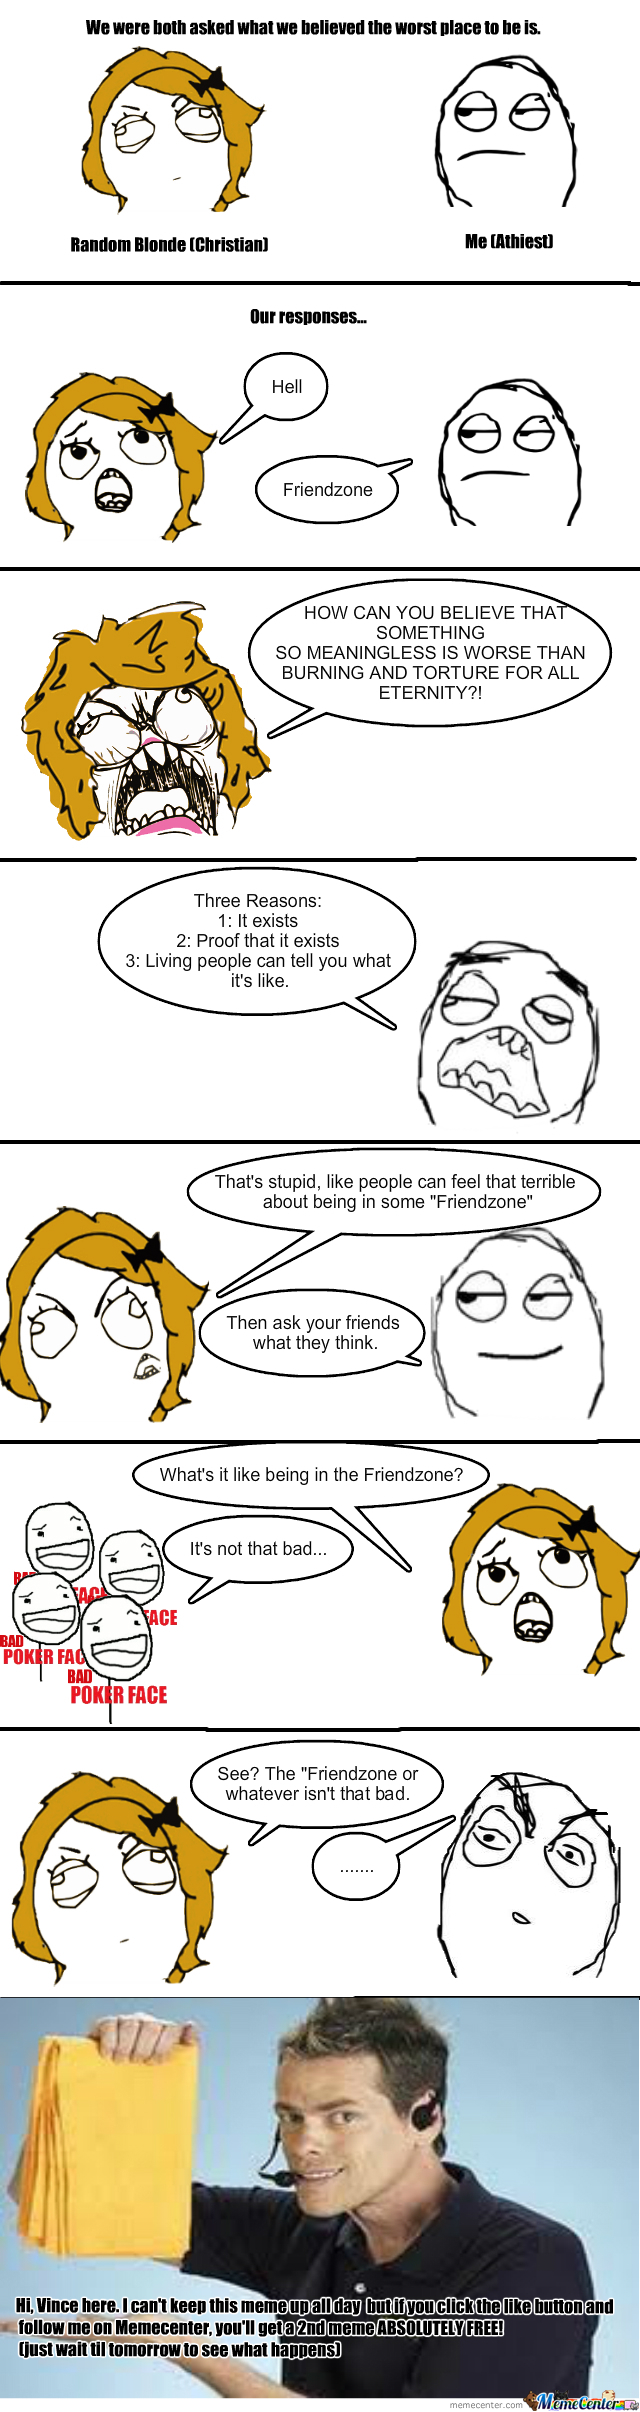 Hell Vs Friendzone